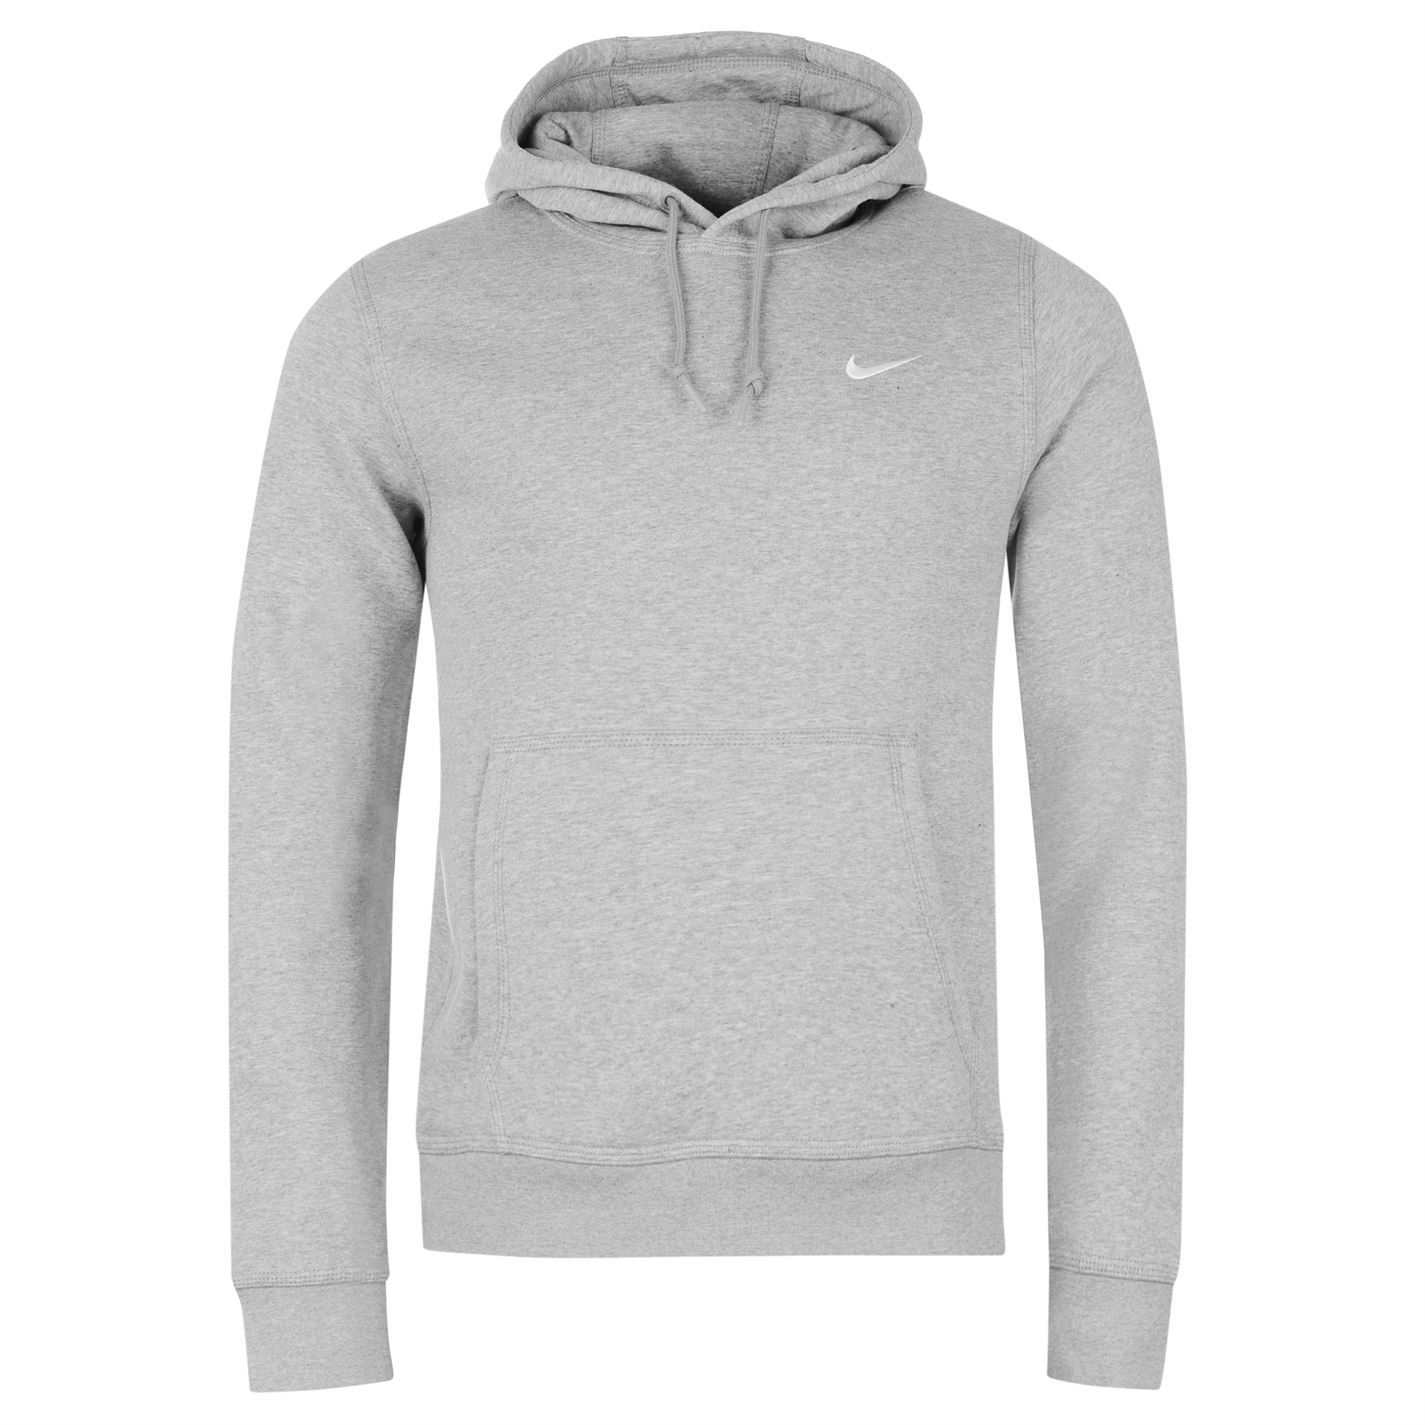 Nike-Fundamentals-Fleece-Lined-Pullover-Hoody-Mens-OTH-Hoodie-Sweatshirt-Sweater thumbnail 15